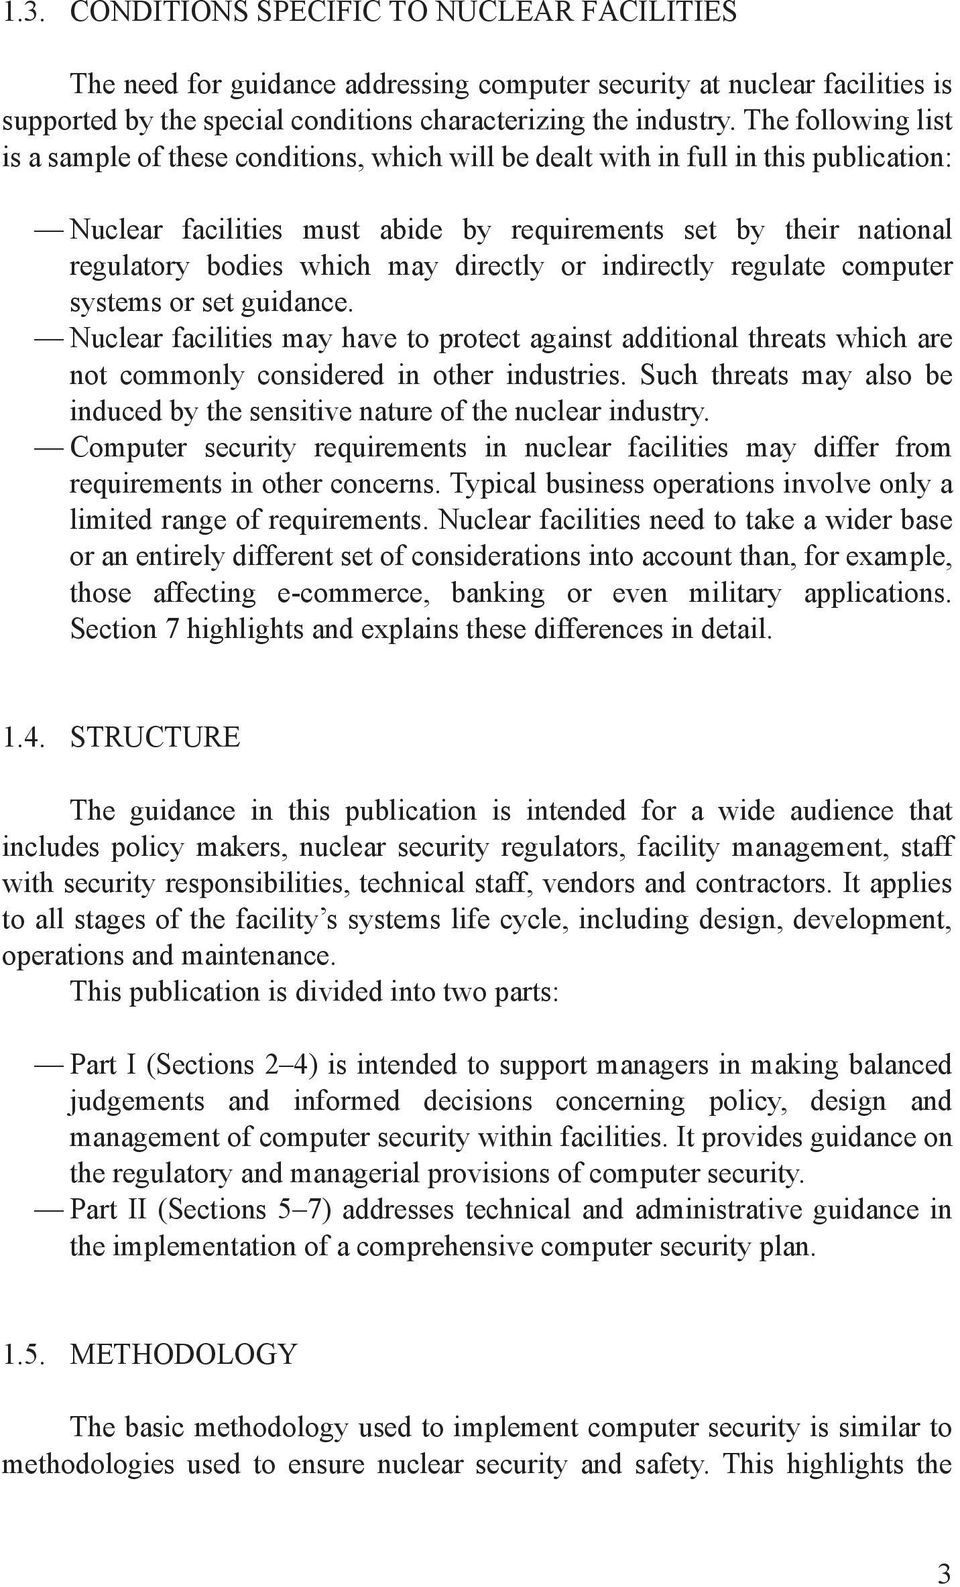 may directly or indirectly regulate computer systems or set guidance. Nuclear facilities may have to protect against additional threats which are not commonly considered in other industries.